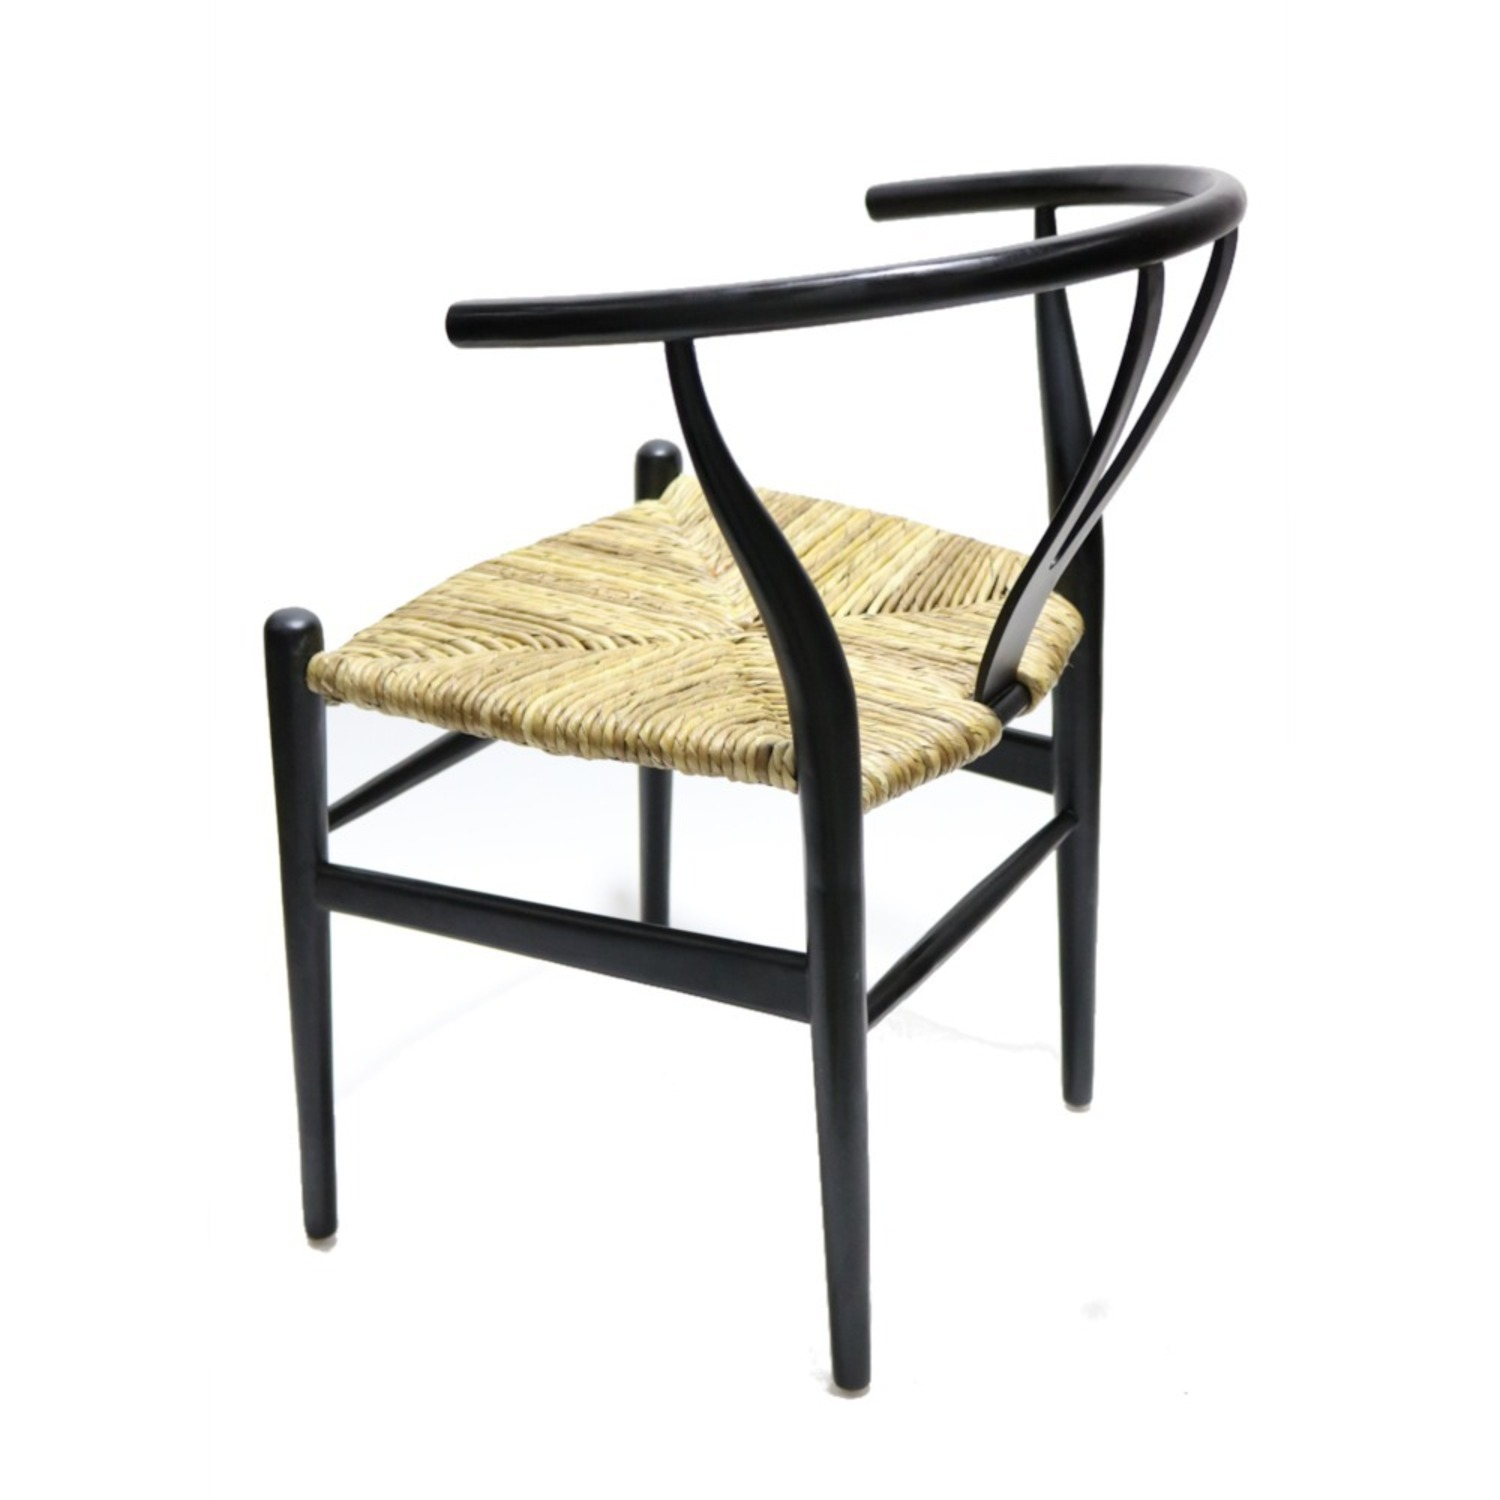 Dining Chair In Black Frame & Natural Hemp Seat - image-2